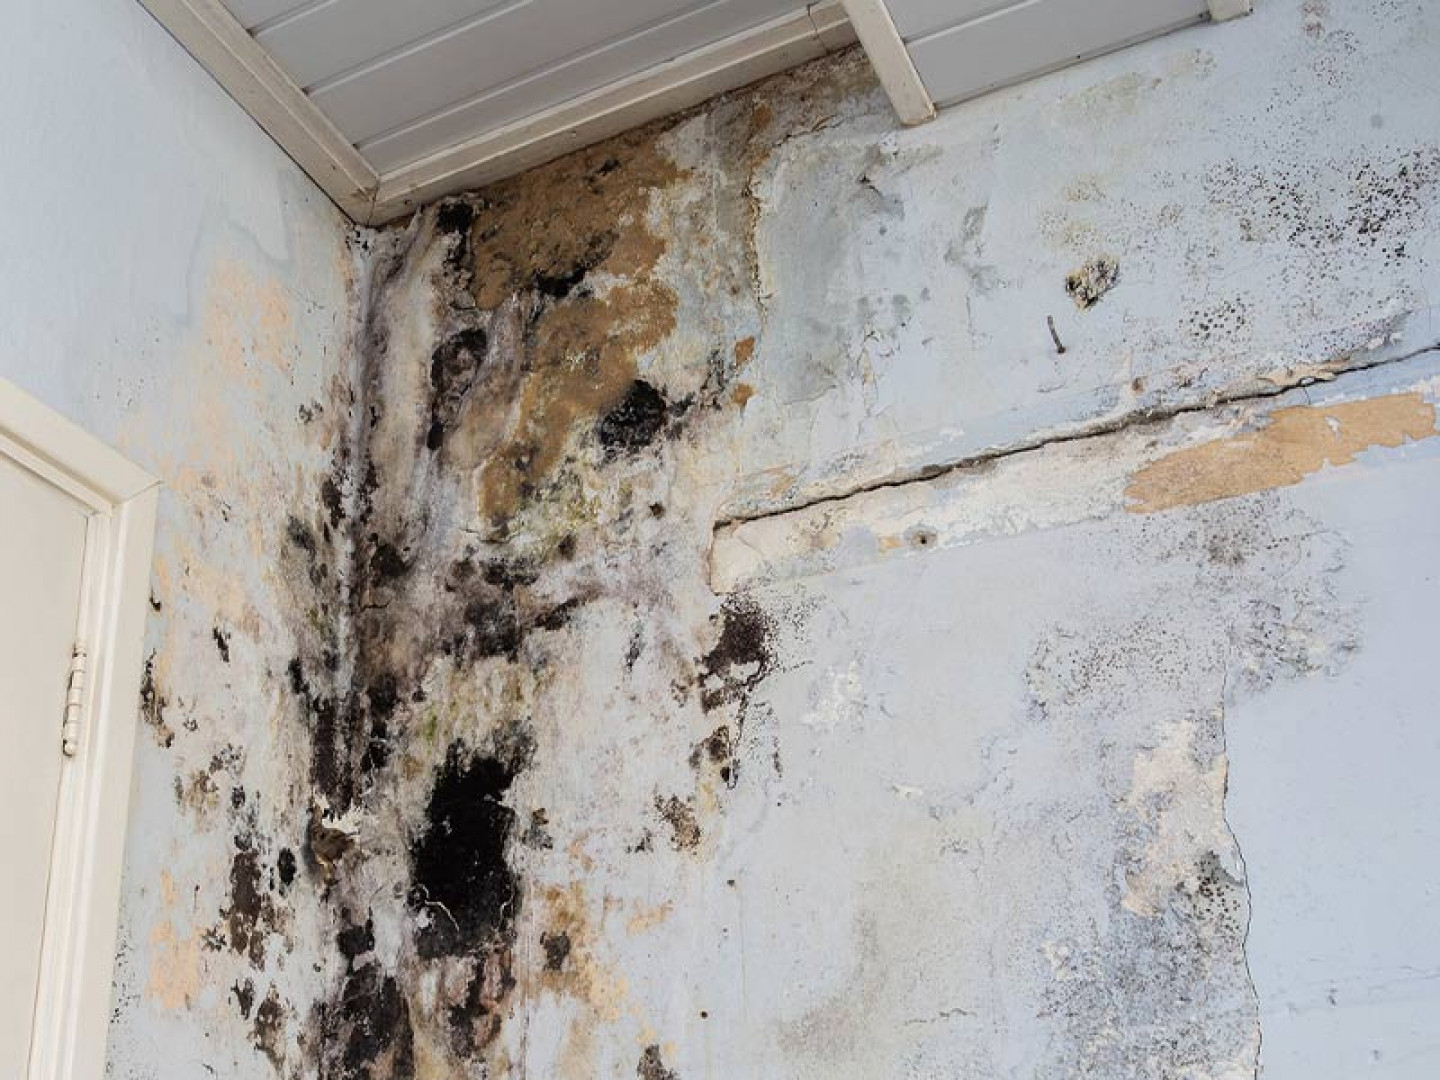 Mold can cause major damage